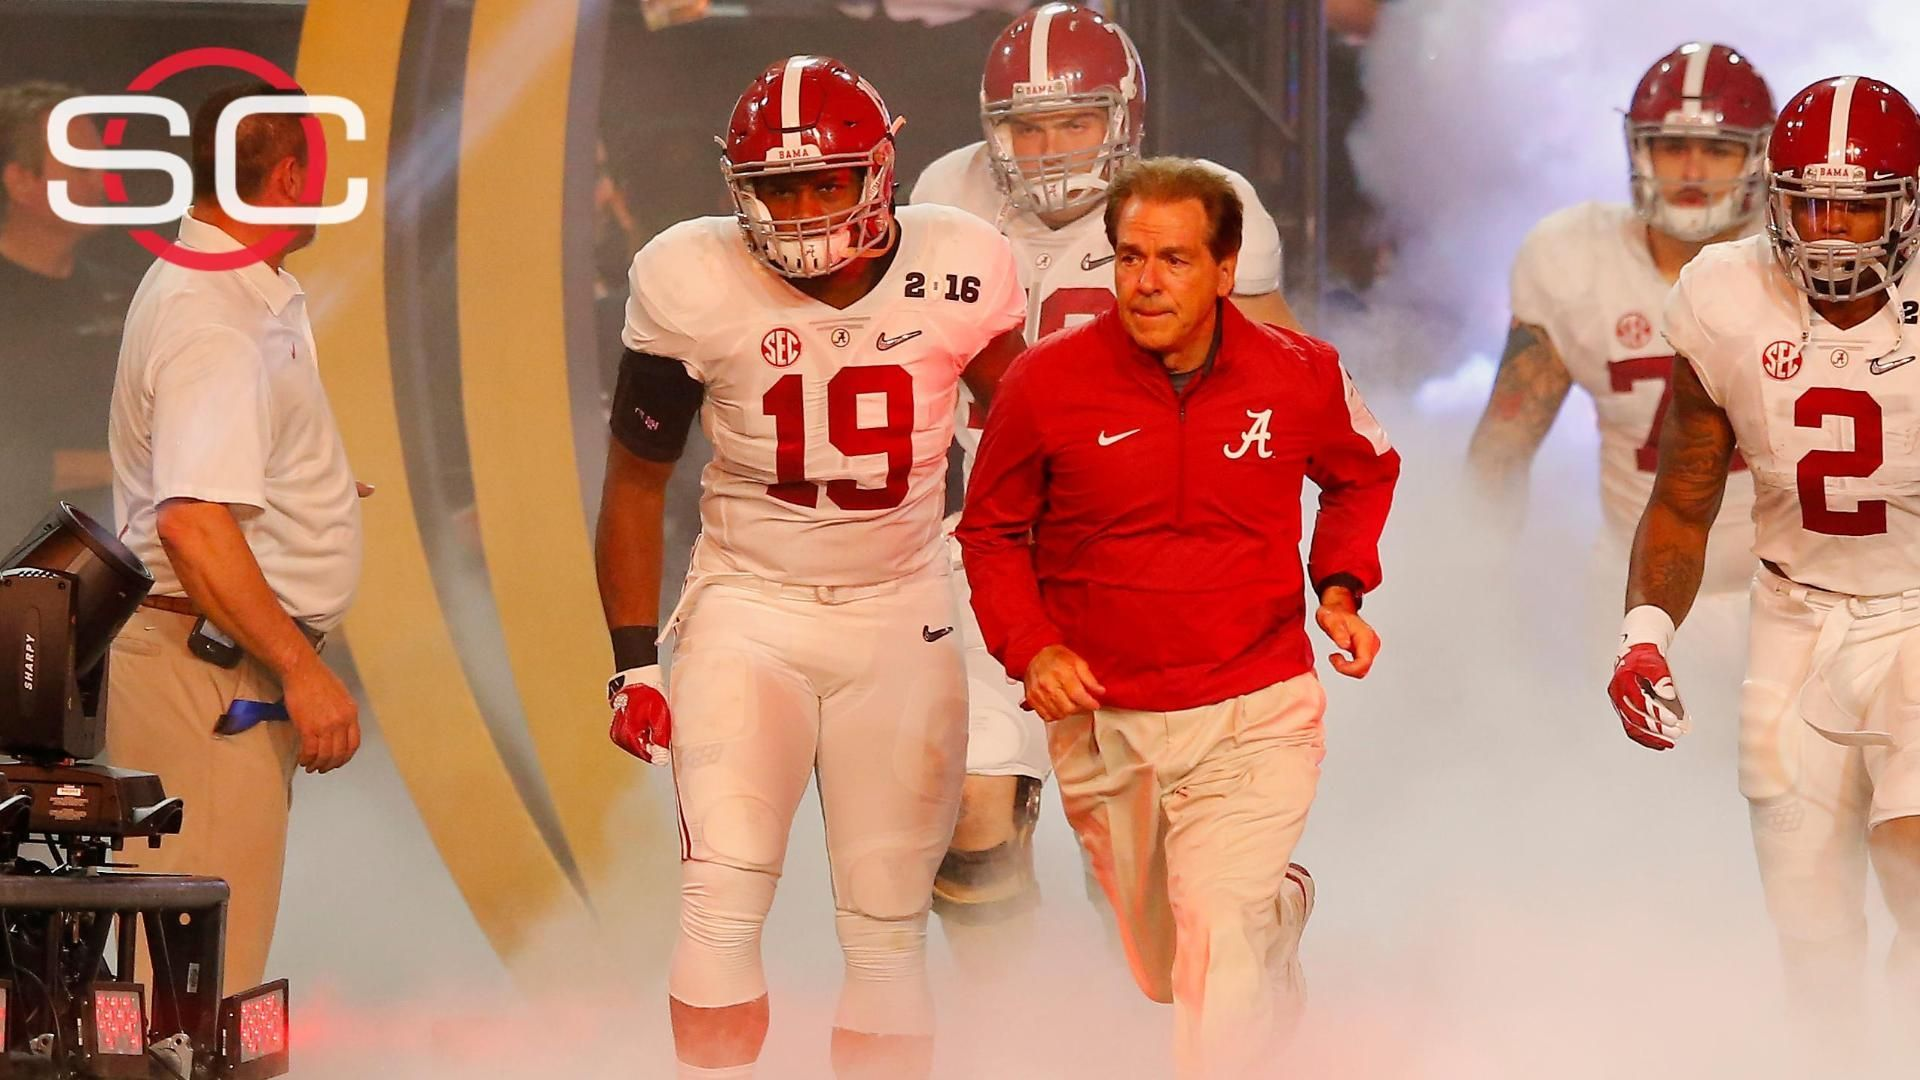 Alabama Rolls On Espn Video Nick Saban Crimson Tide Football Bama Football